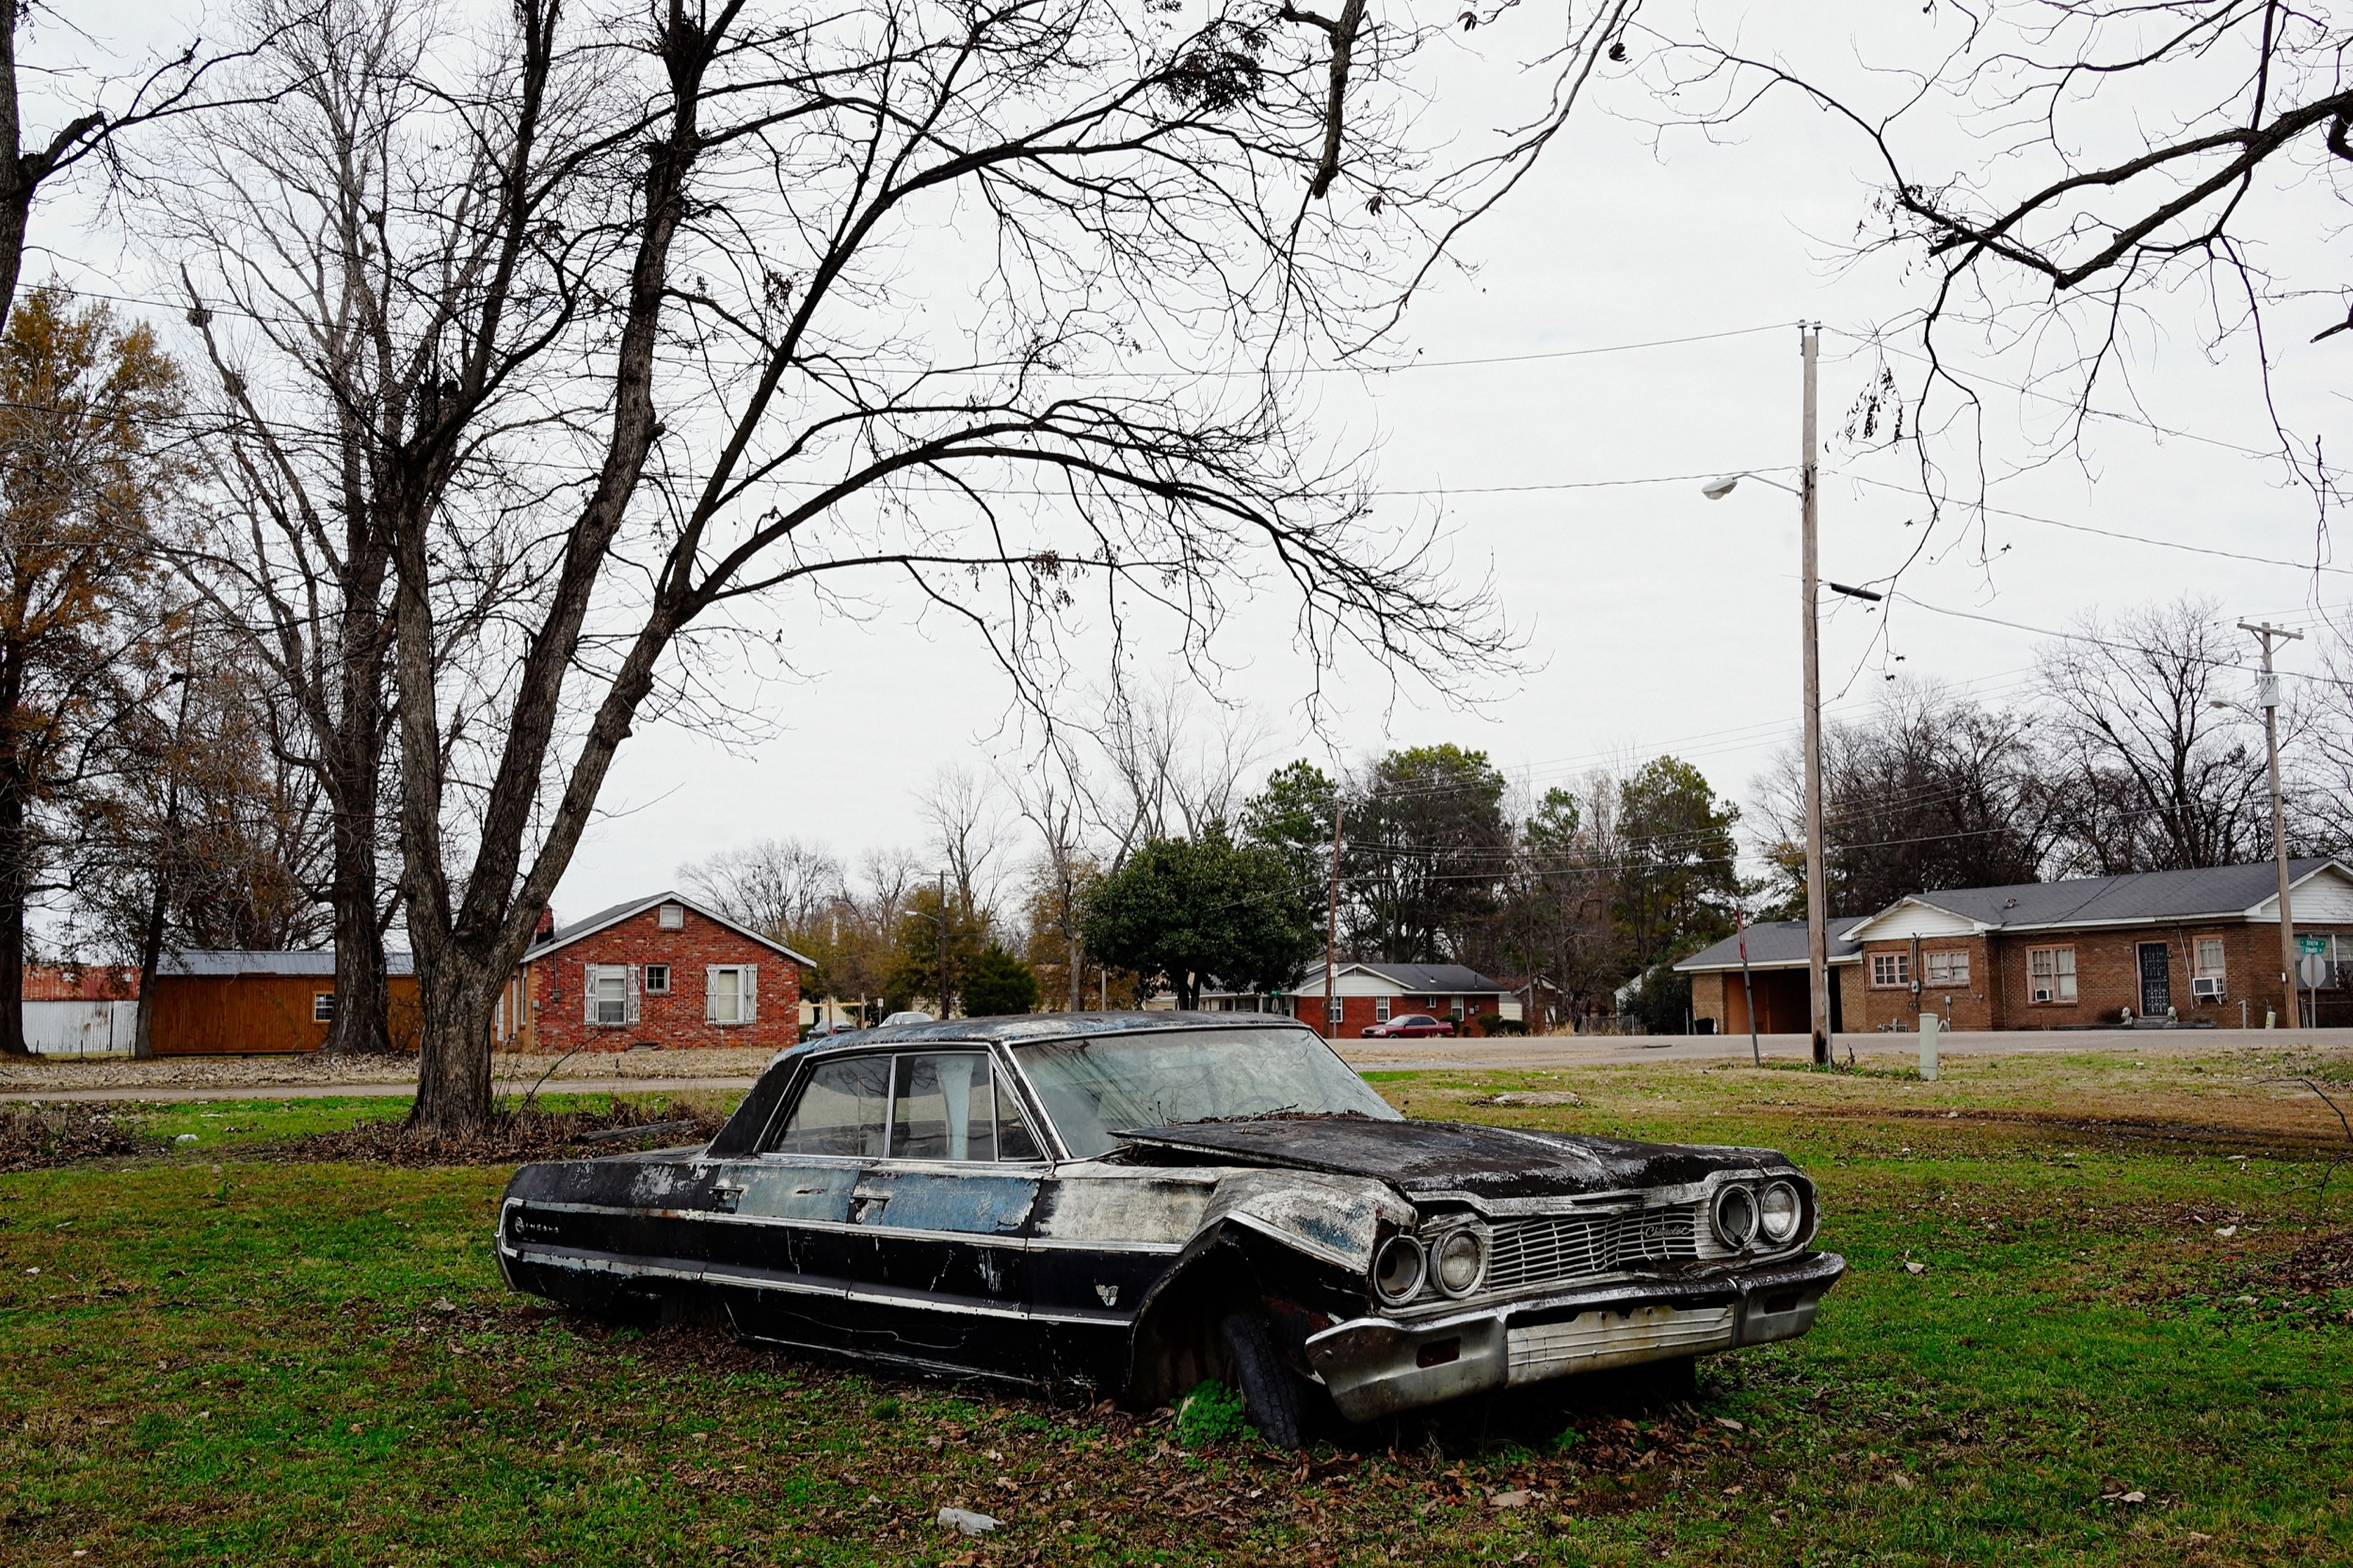 A moment of stillness shot while on assignment in Mound Bayou, Mississippi: the first all-black town in the US.